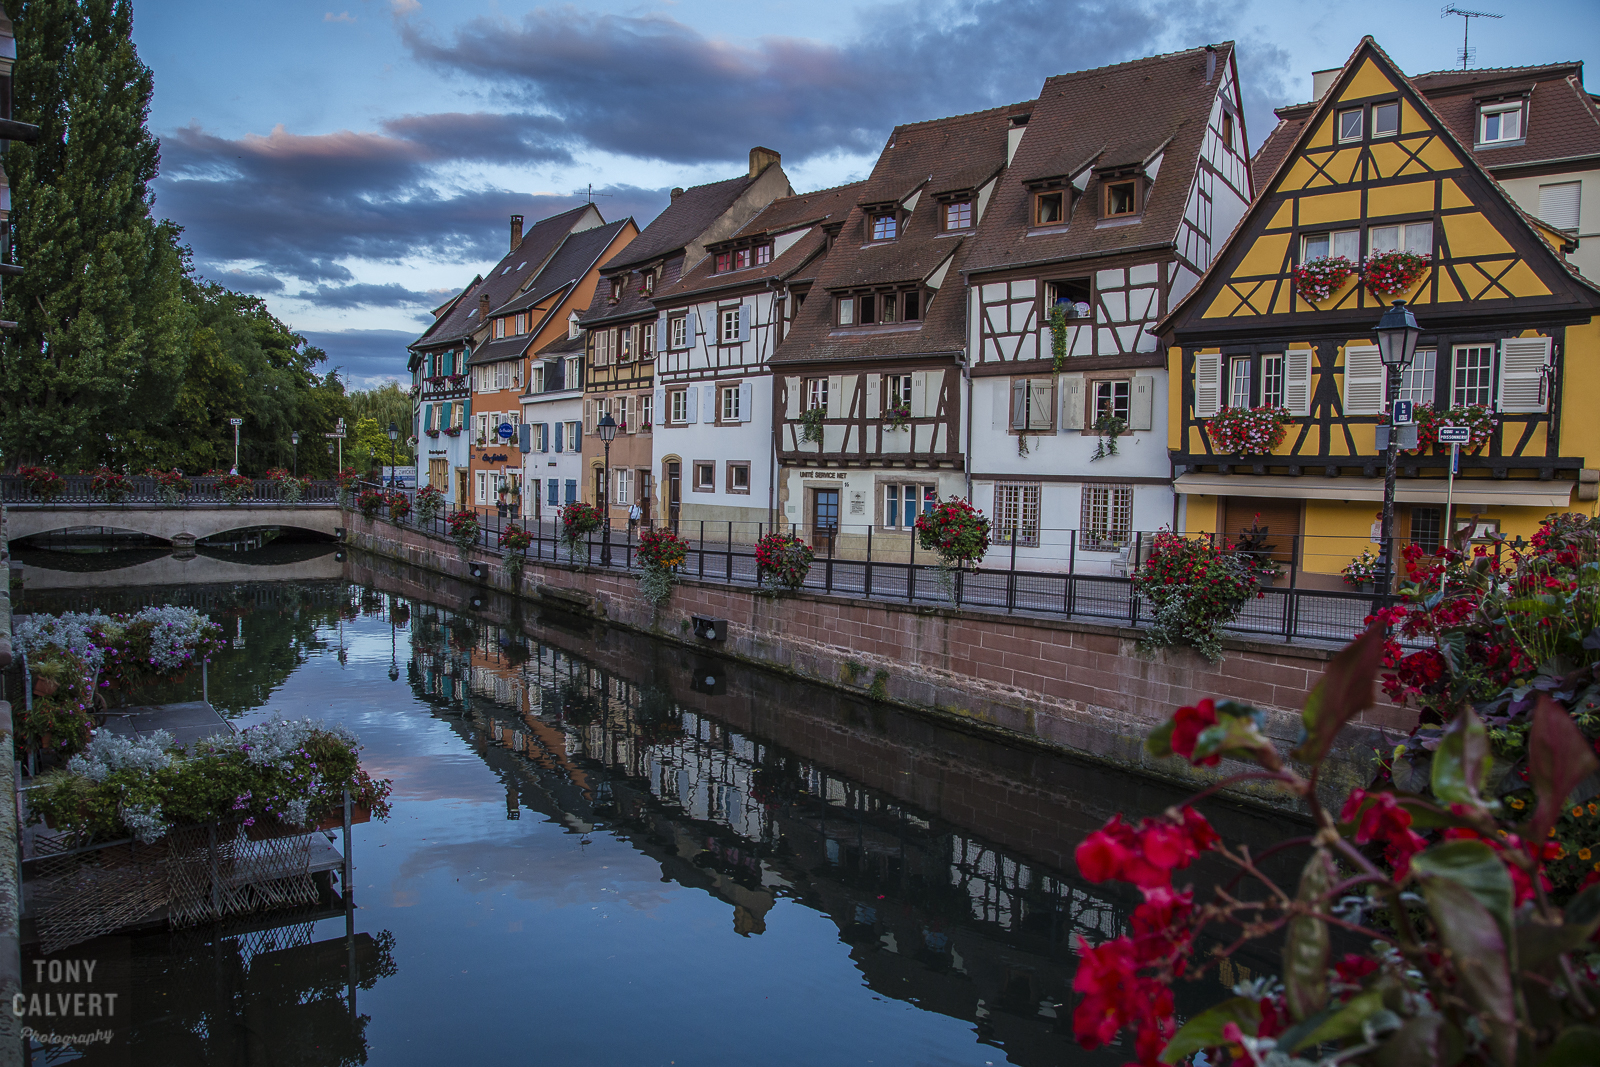 Alsace! France with a little bit of Germany mixed in